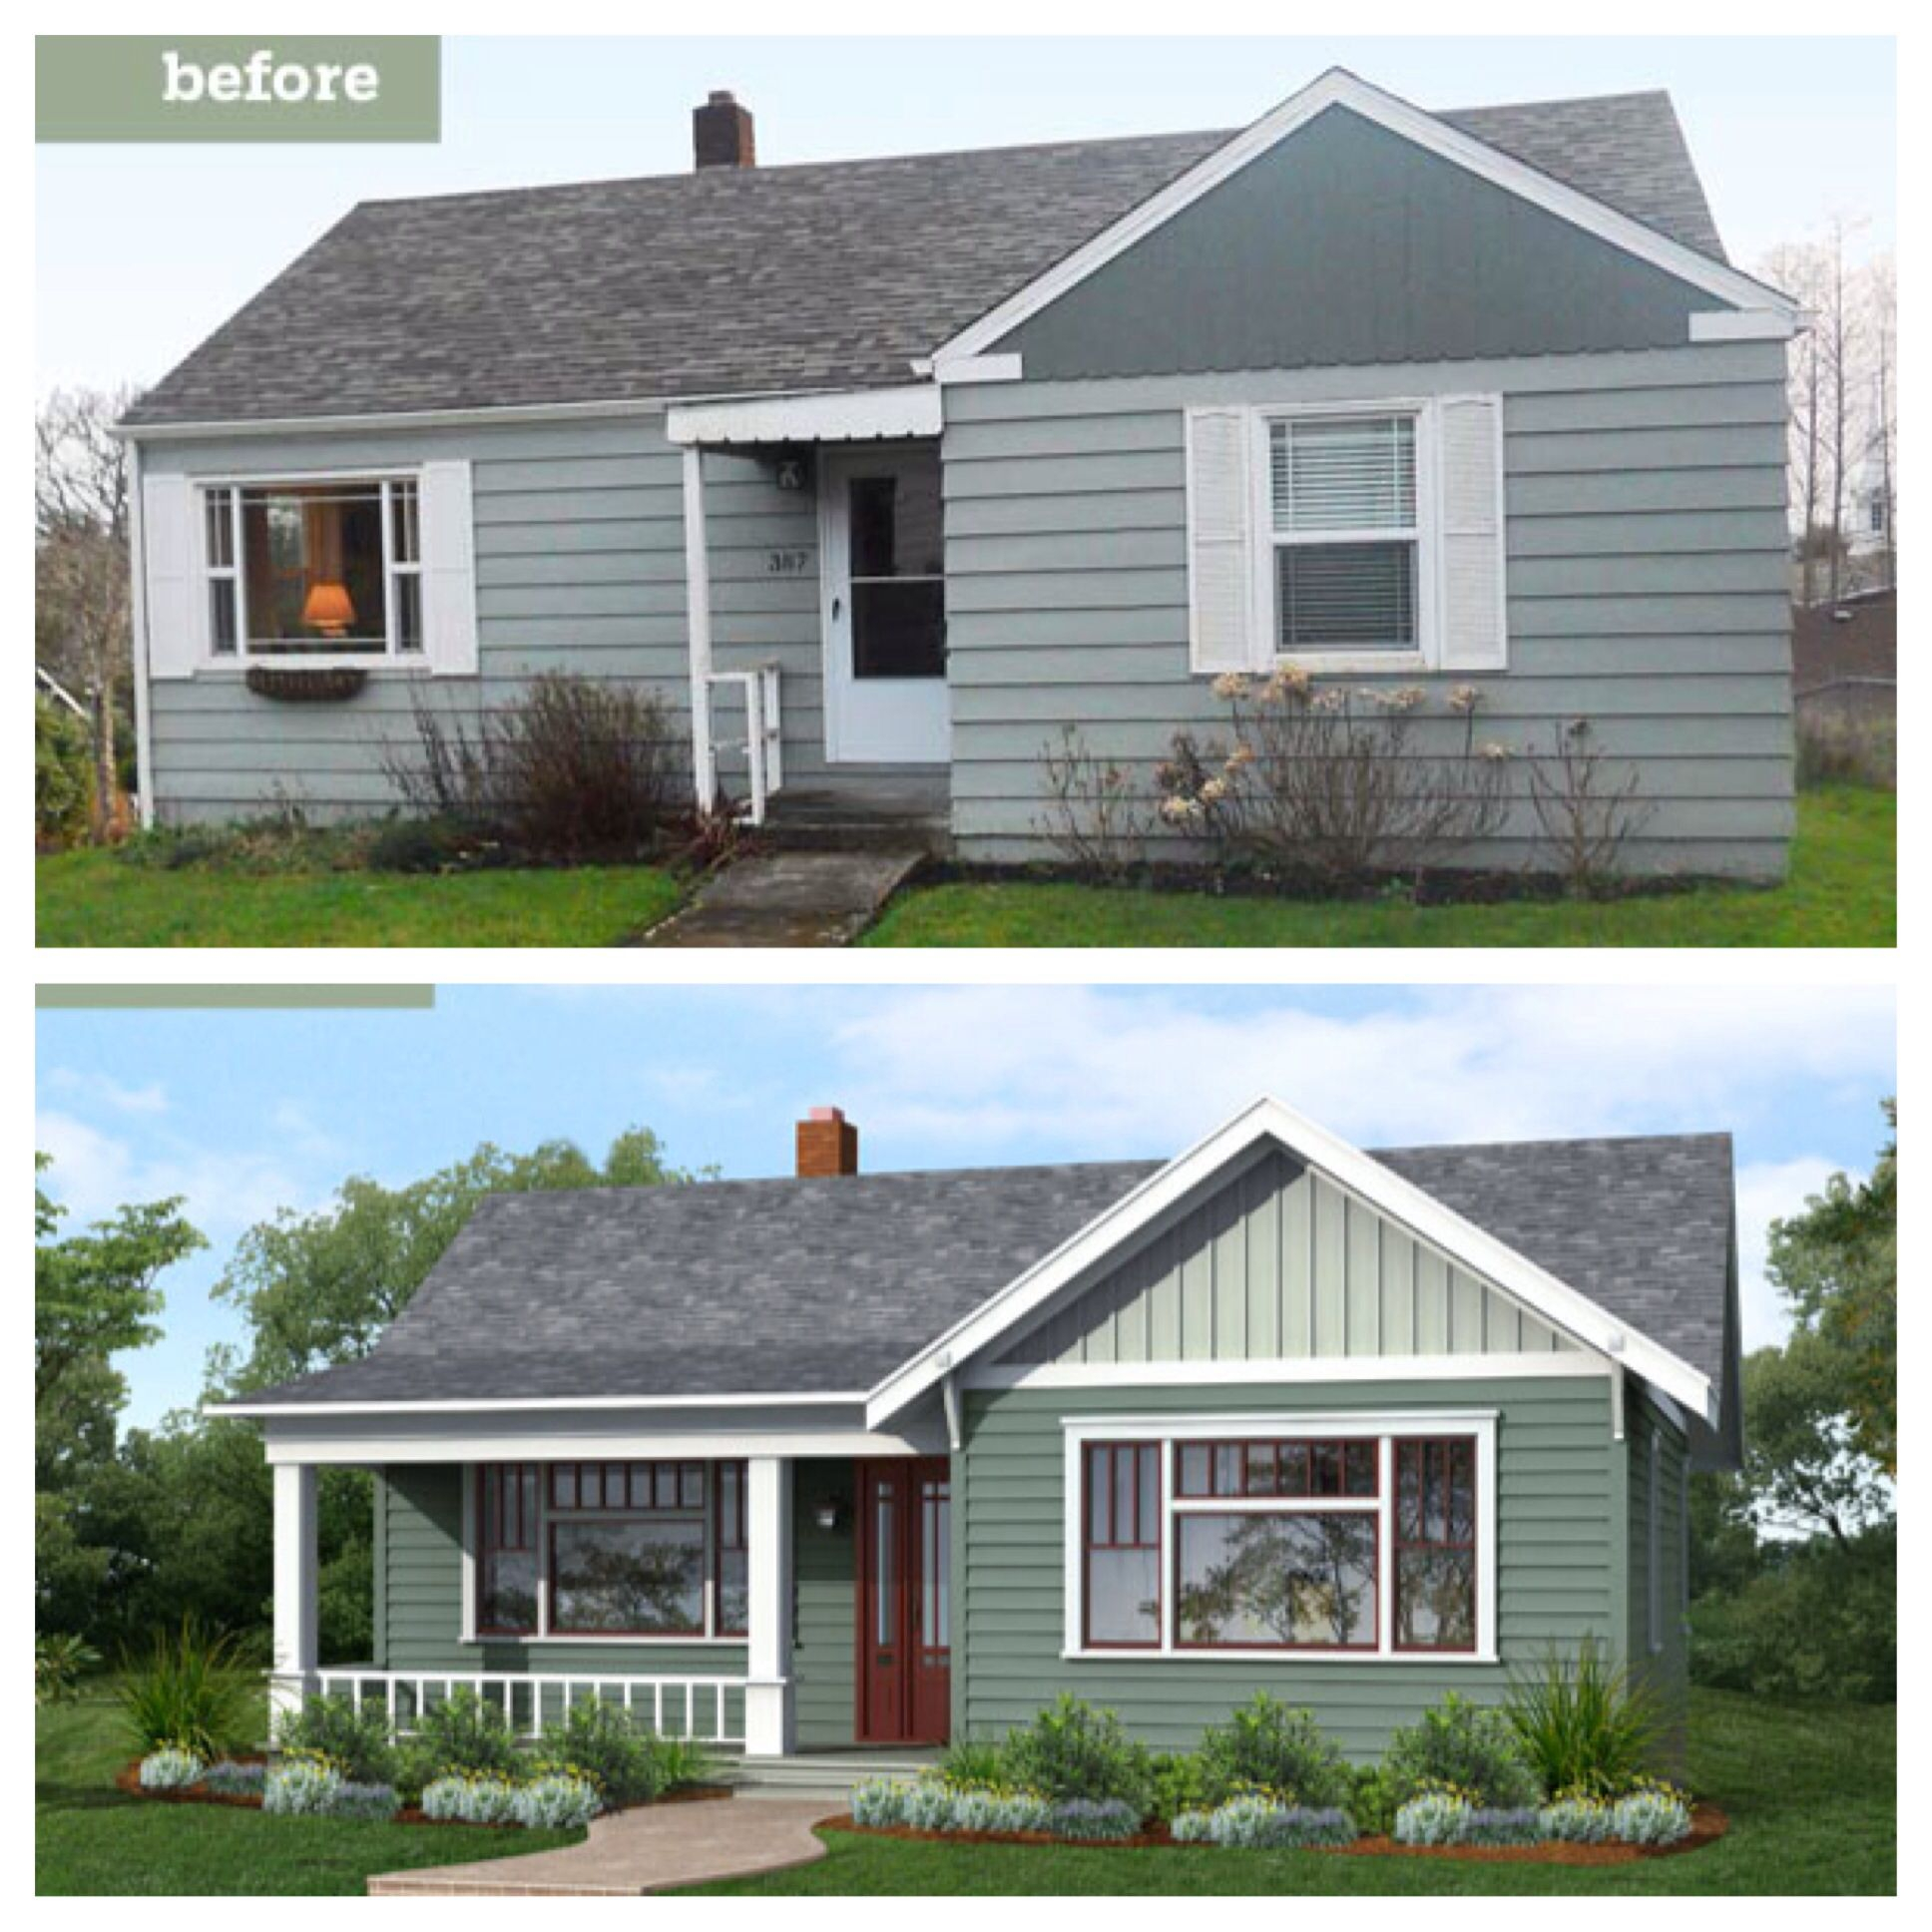 Adding On A Front Porch To A House Porches Ideas